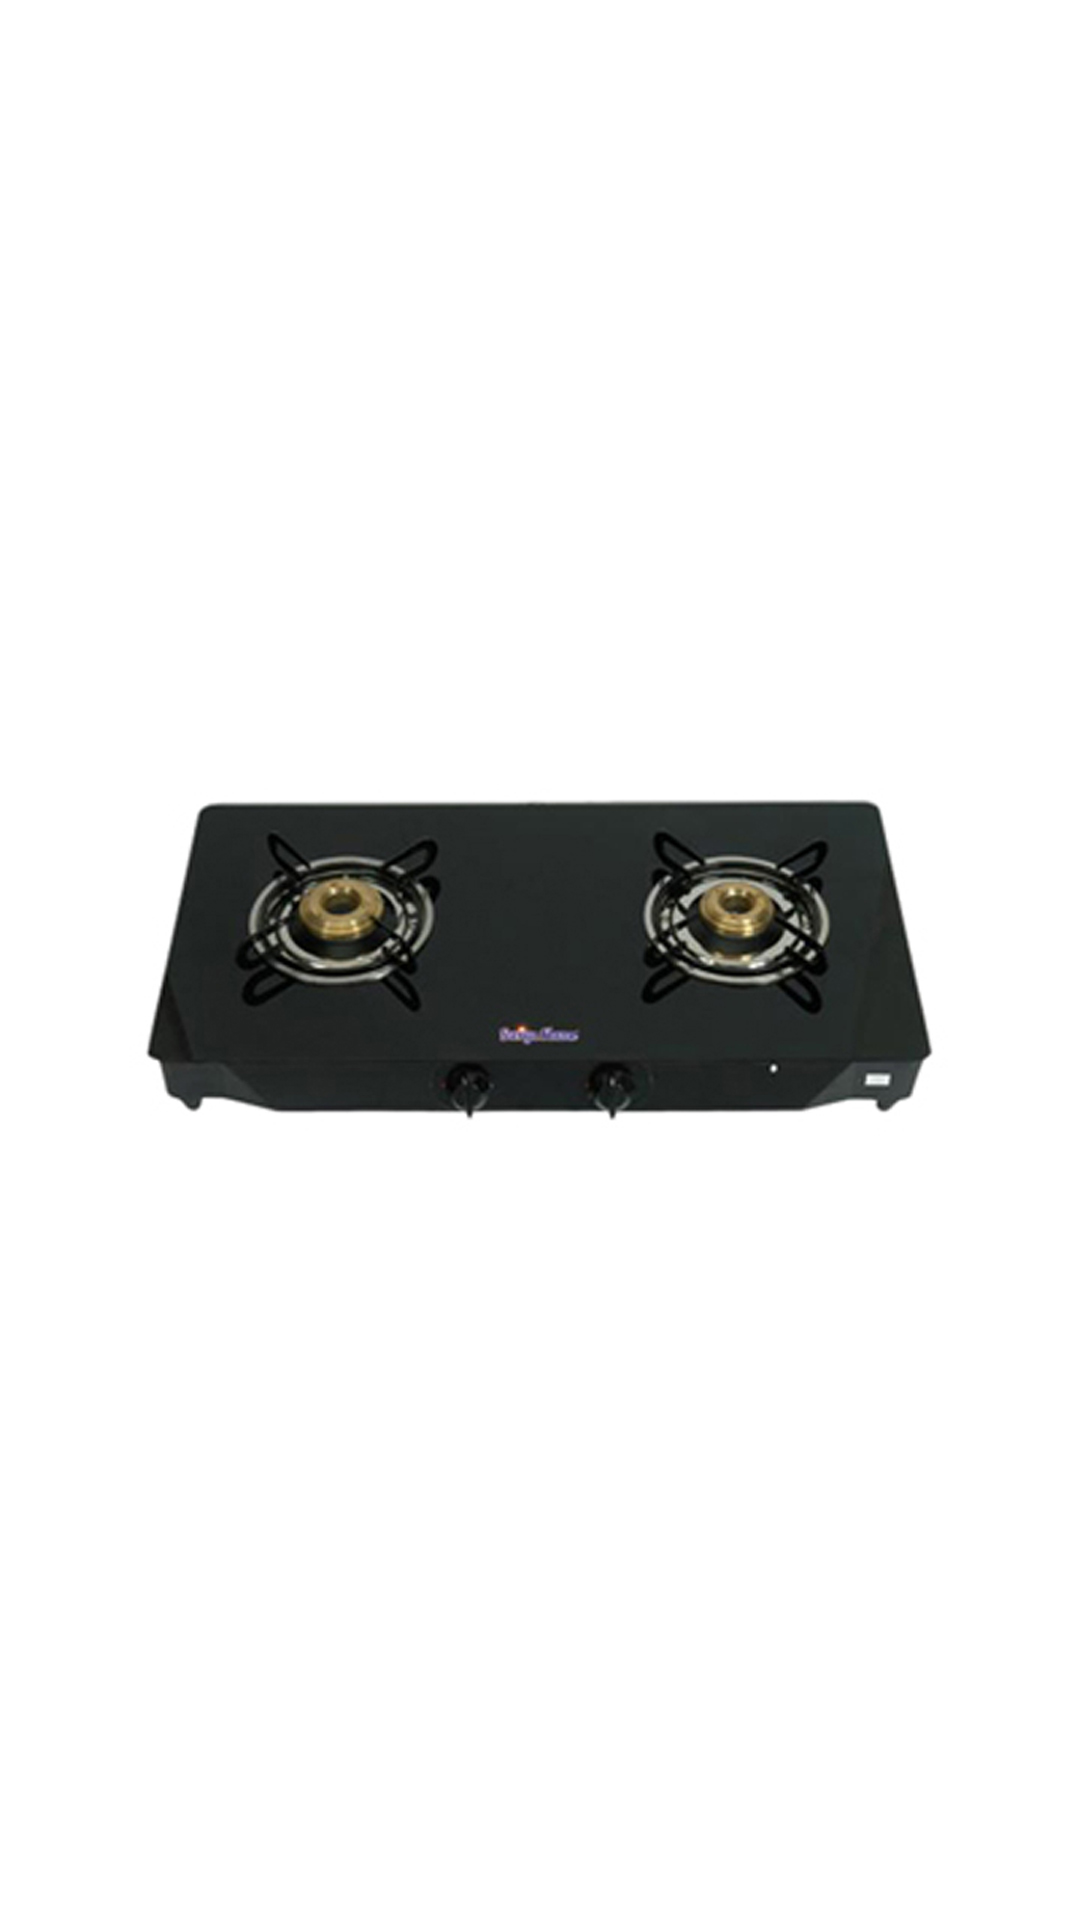 Flame Sparkle SFSP-GL-0672B Gas Cooktop (2 Burner)